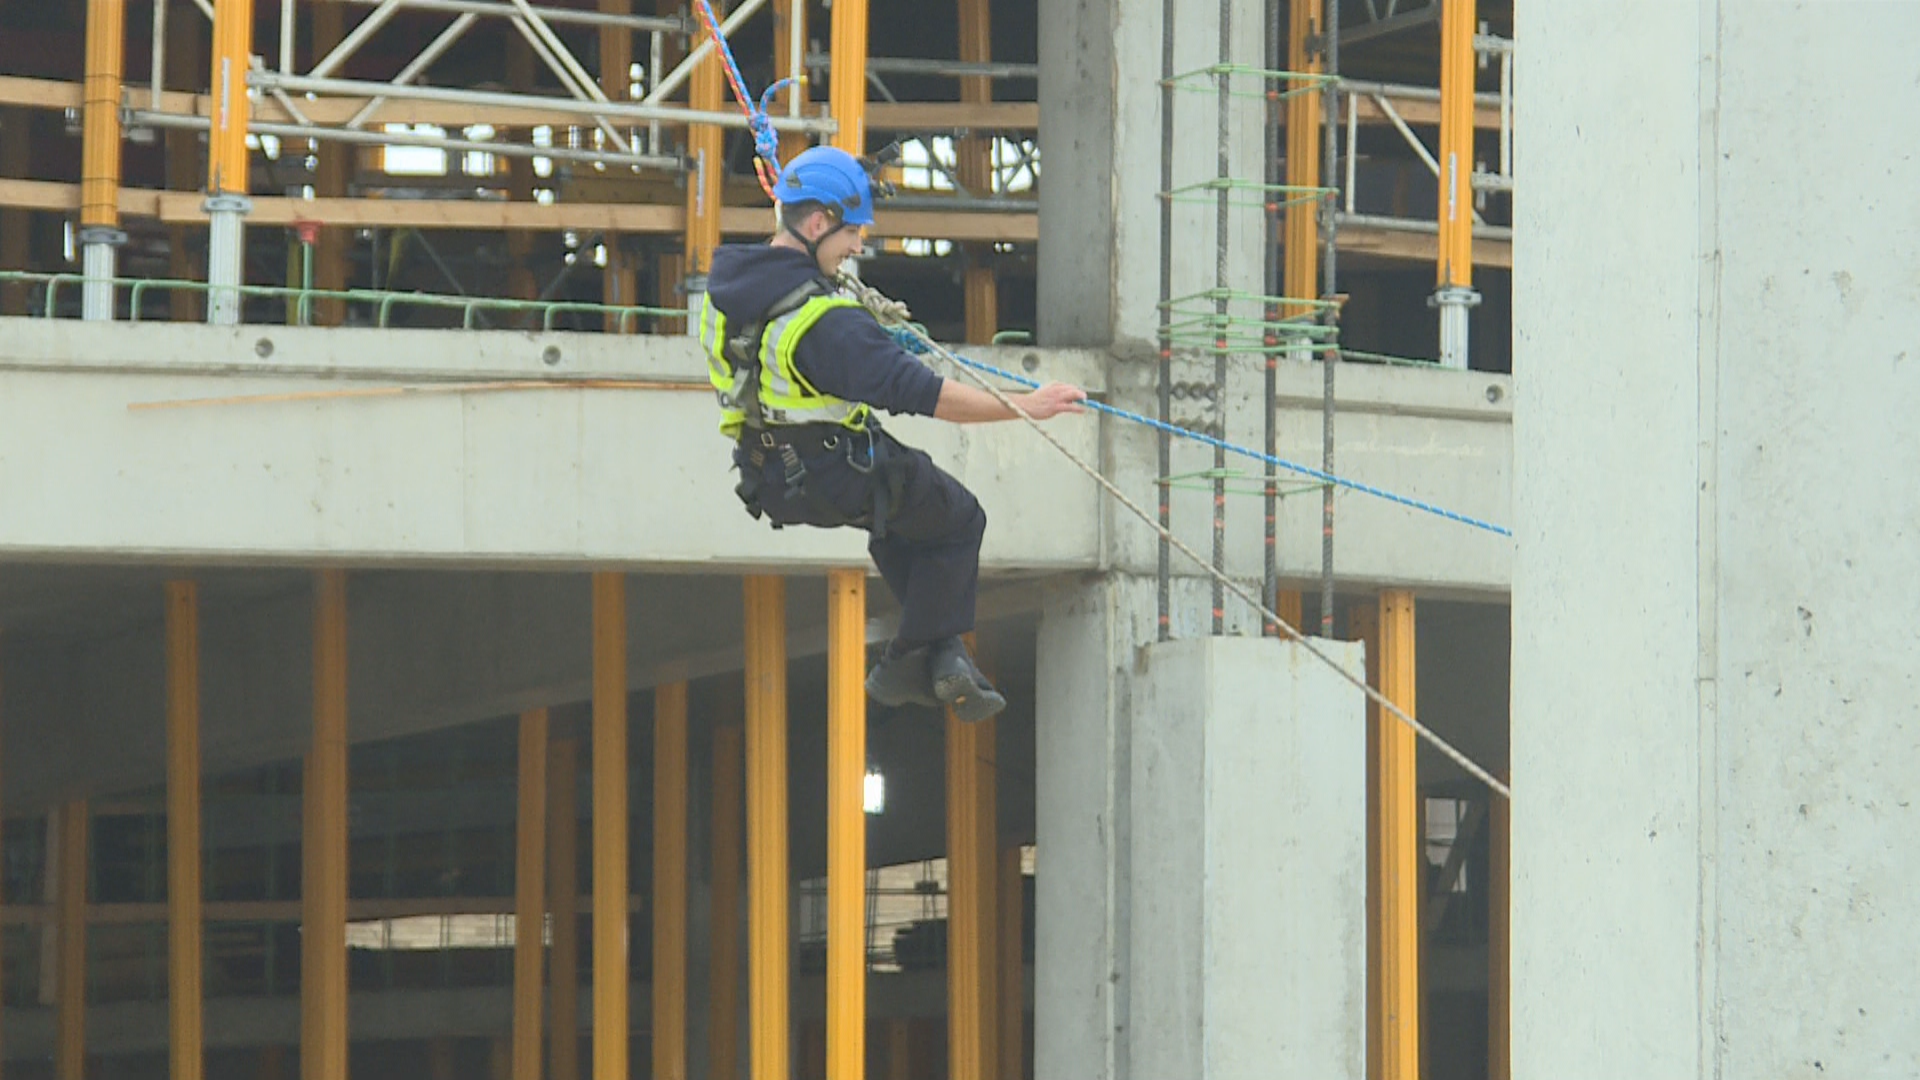 The Kalamazoo Department of Public Safety, Portage Fire Department and CSM Group joined together Saturday for active tower rescue training in downtown Kalamazoo. (WWMT/Jason Puhr)